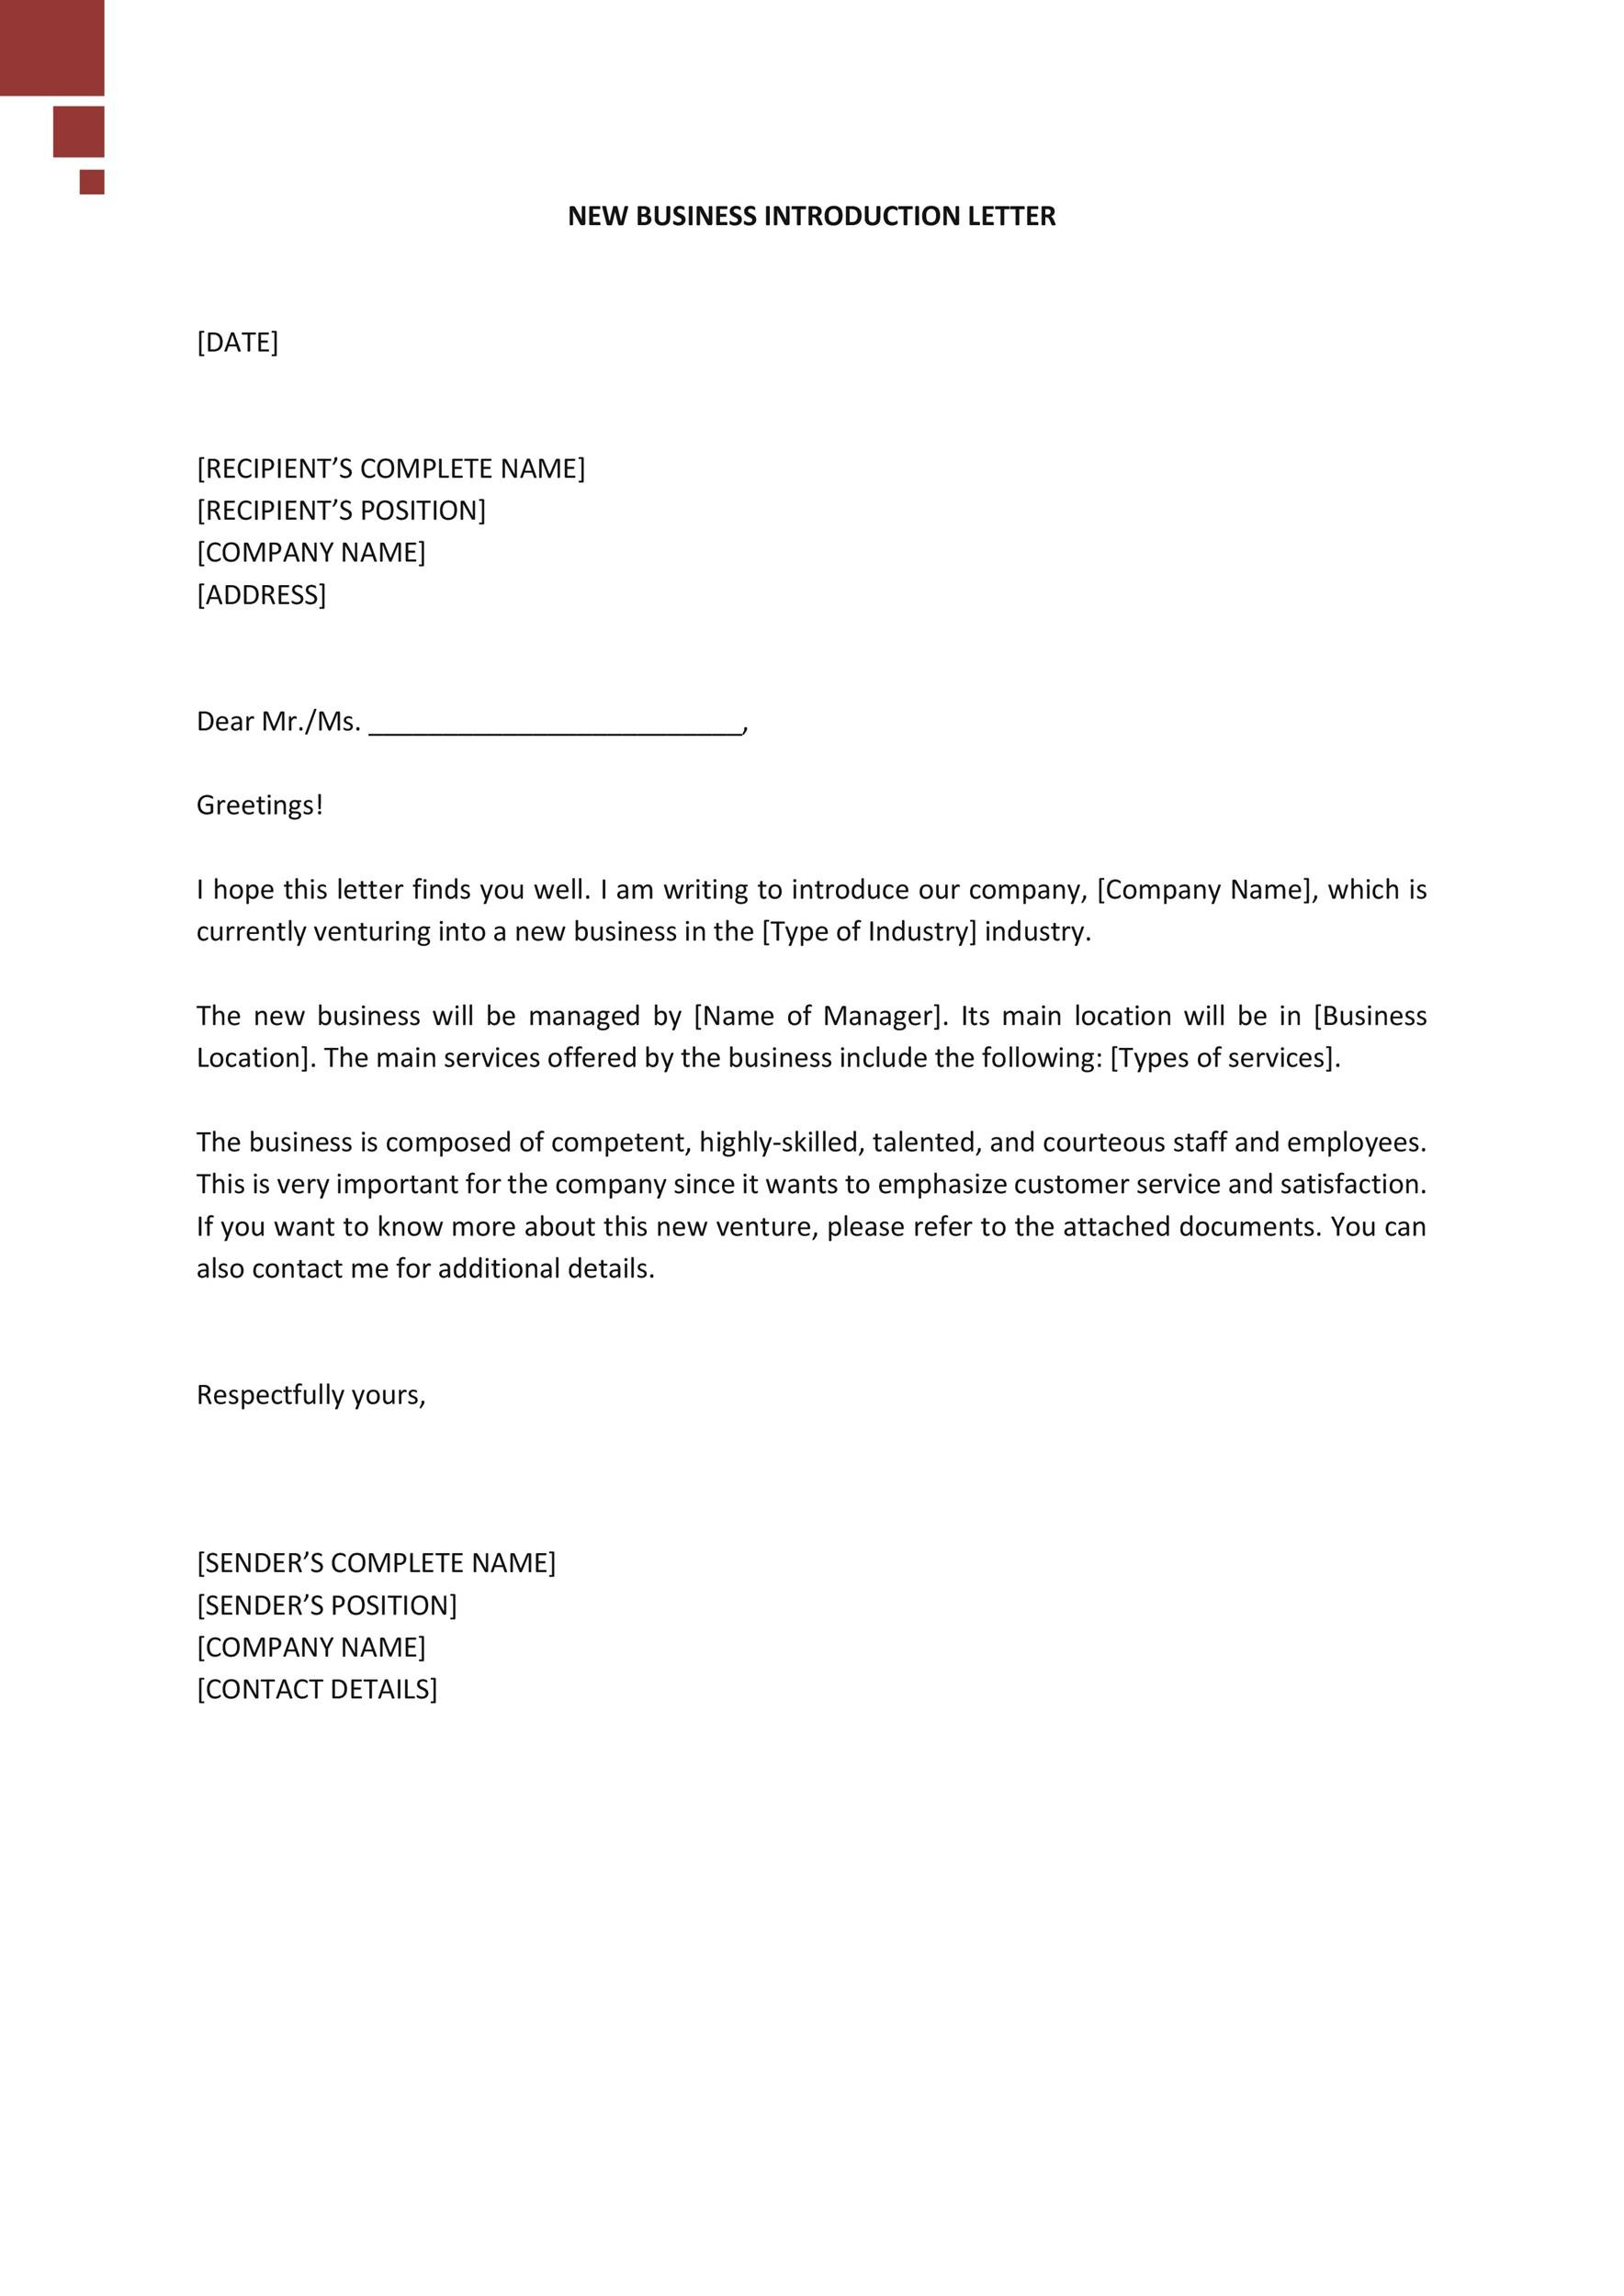 New Company Introduction Letter from templatelab.com